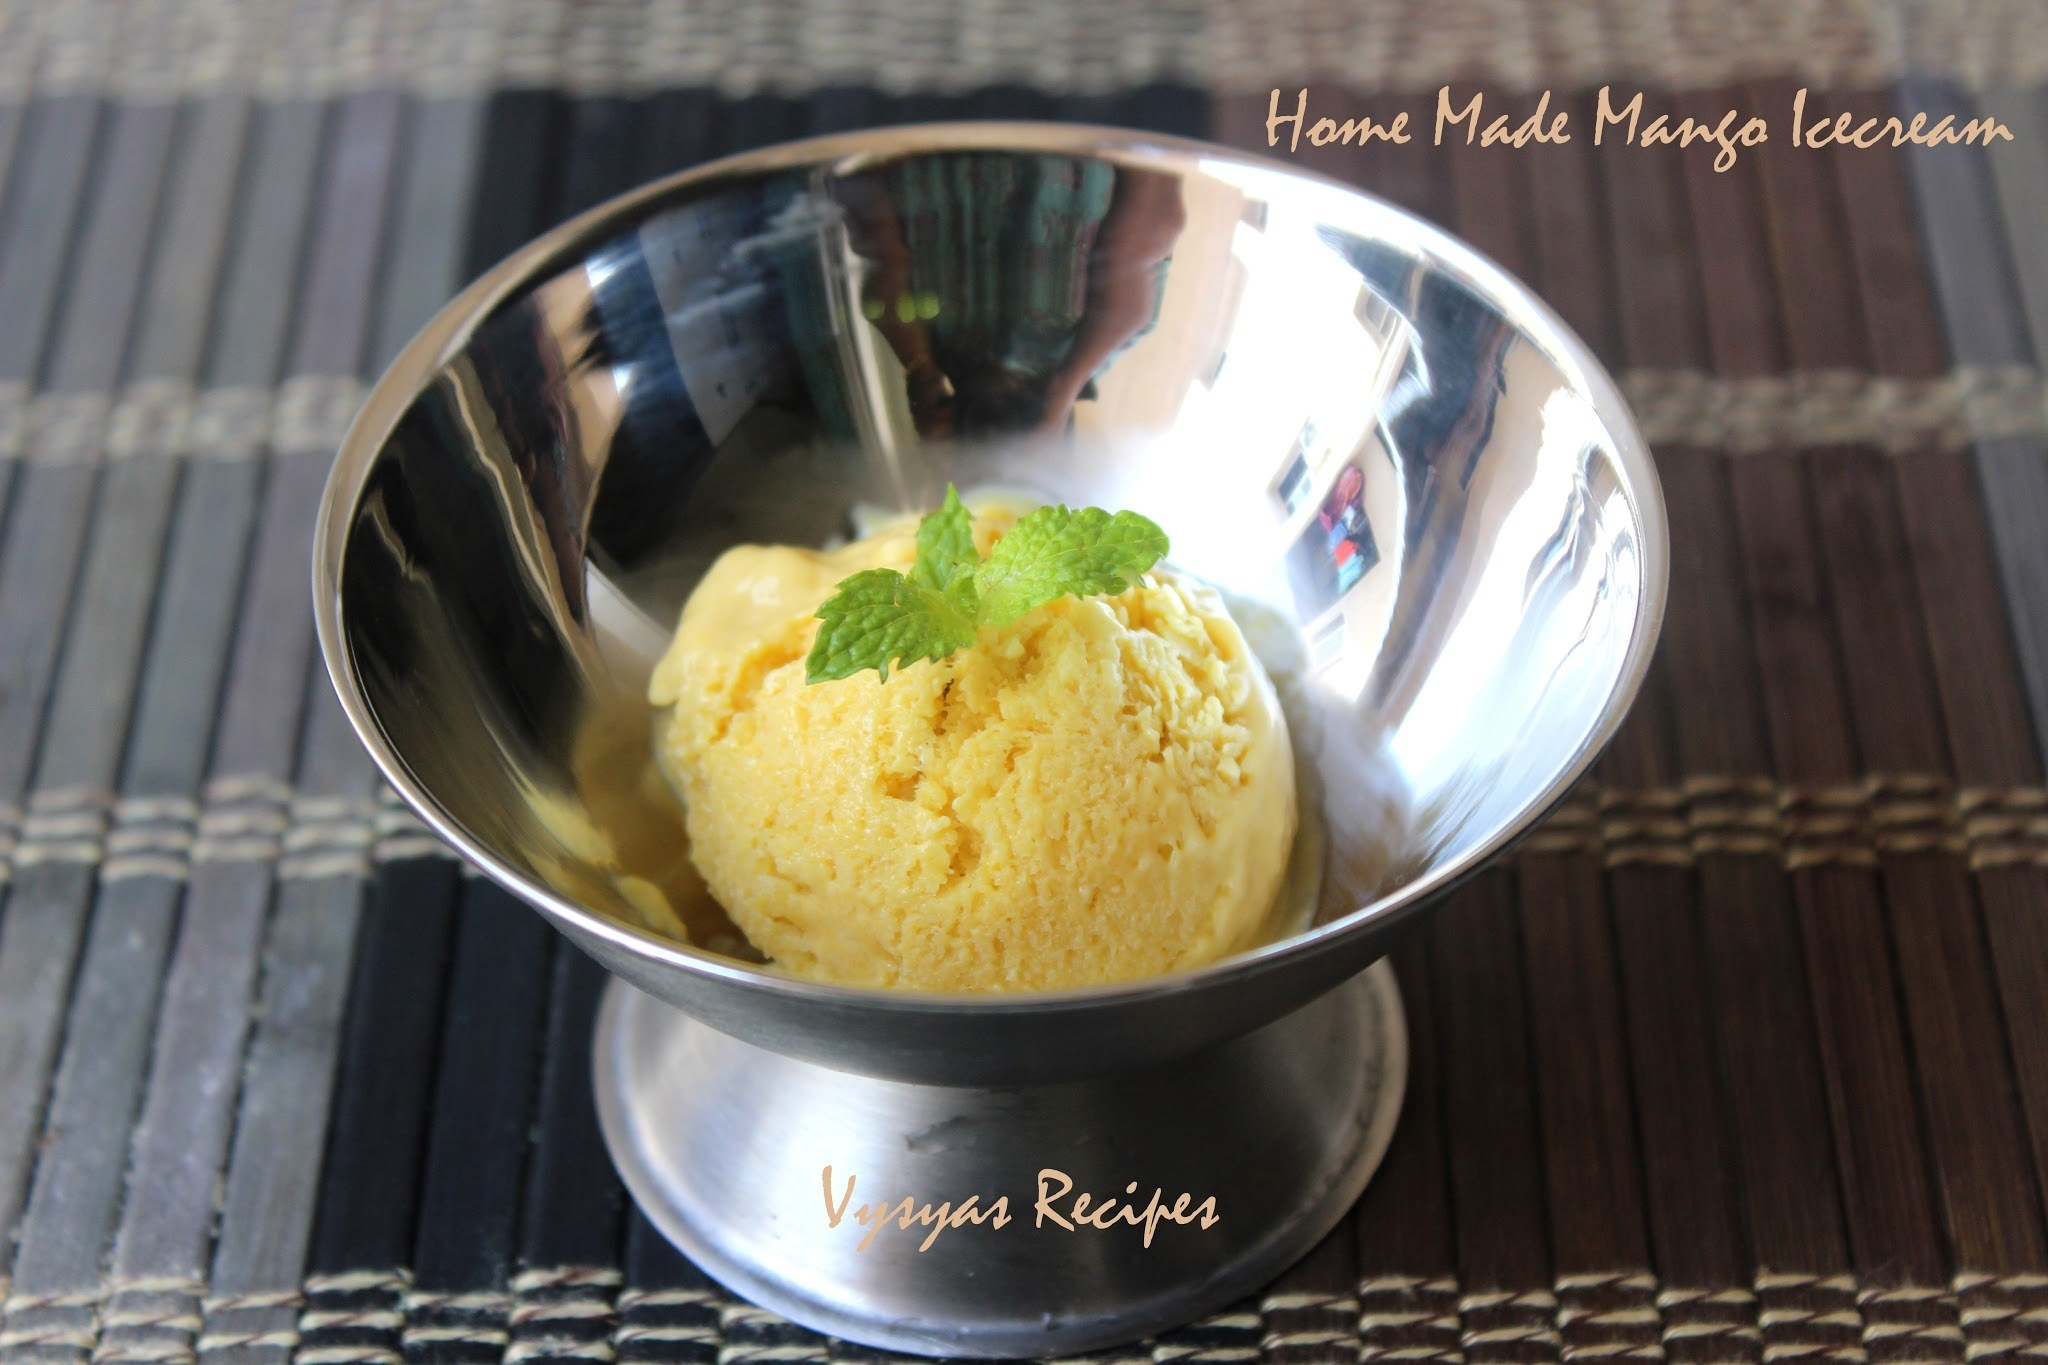 Home Made Mango Icecream - Easy Mango Icecream